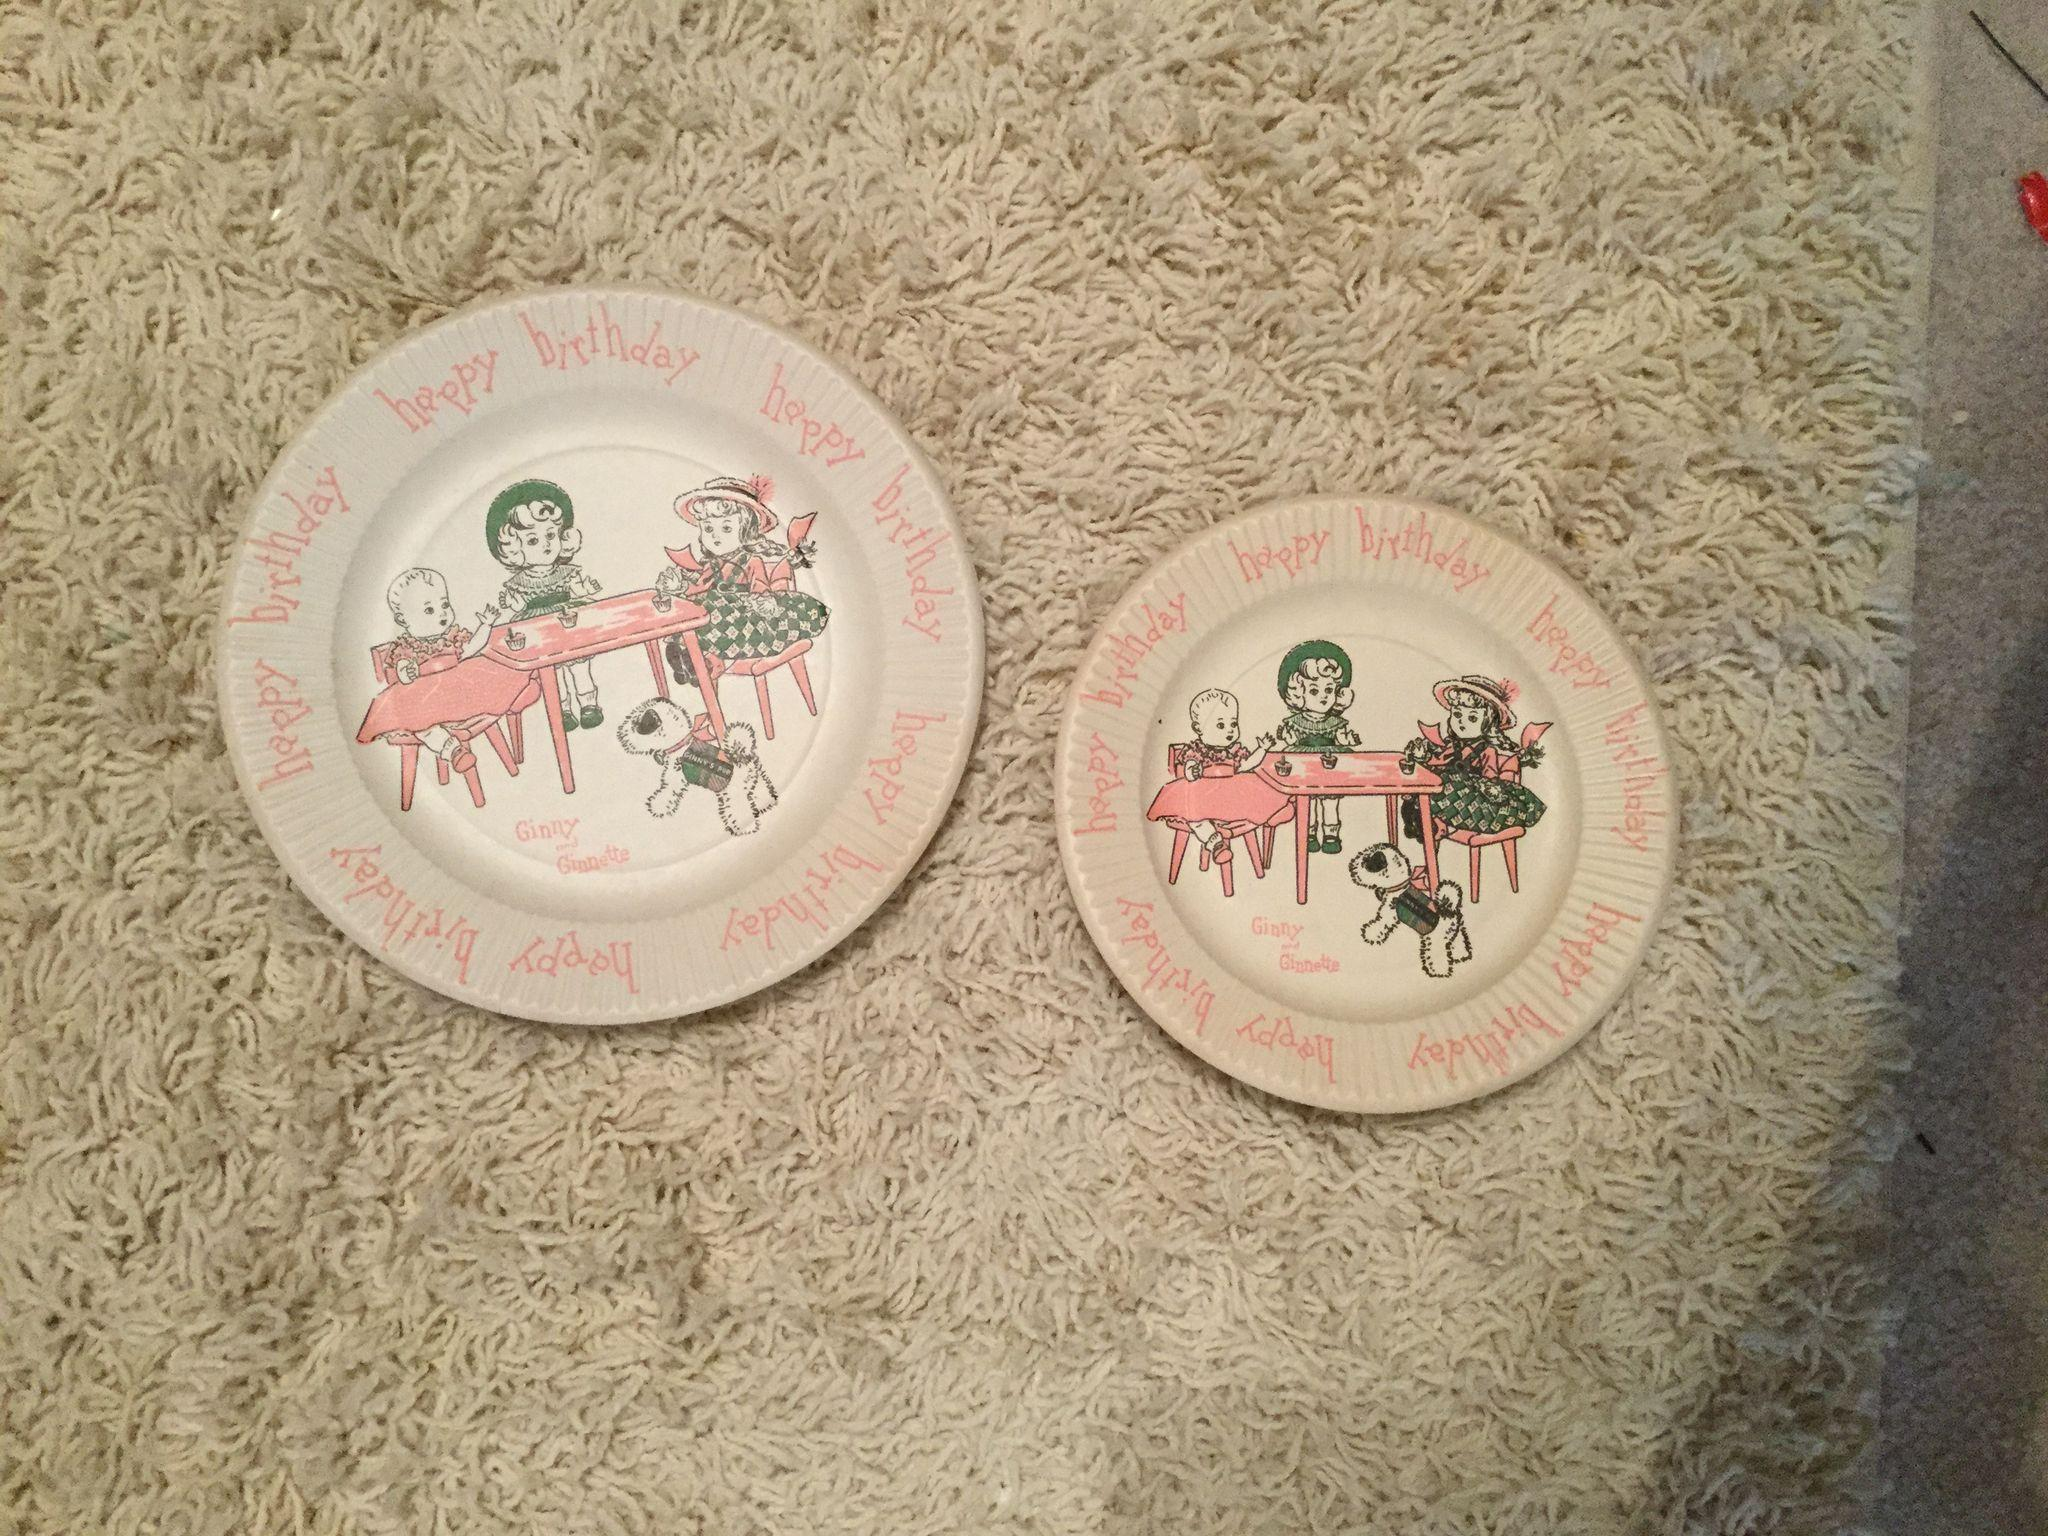 Ginny paper party plates 1950's